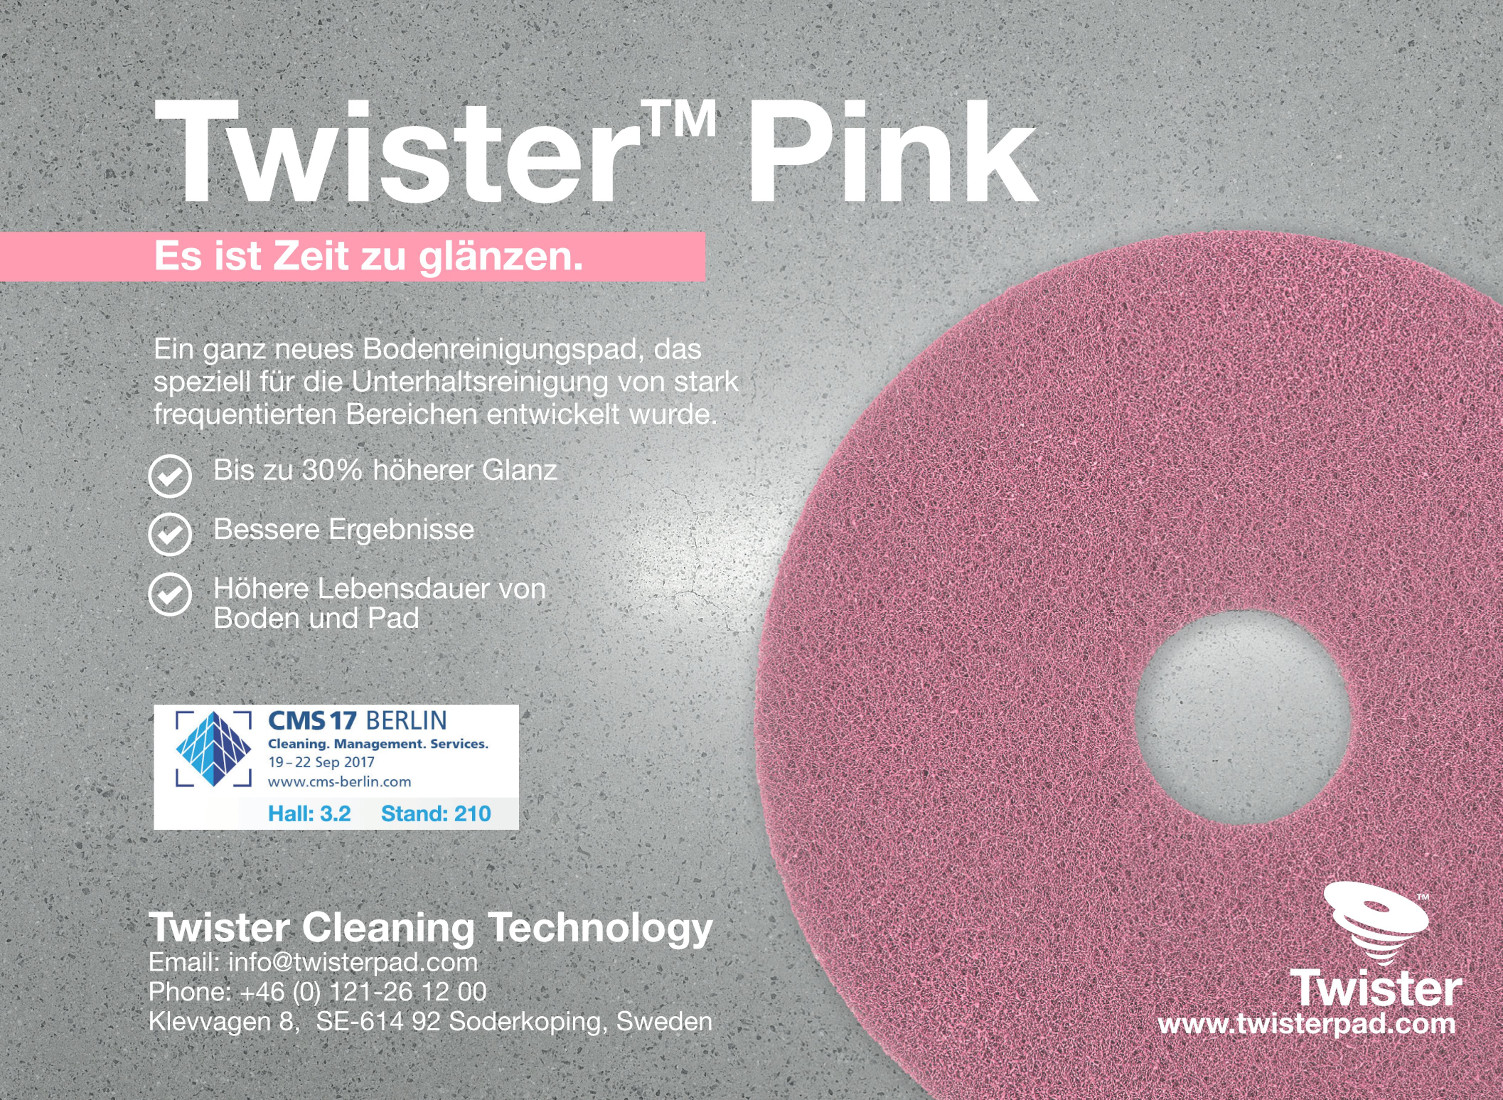 Twister-pink